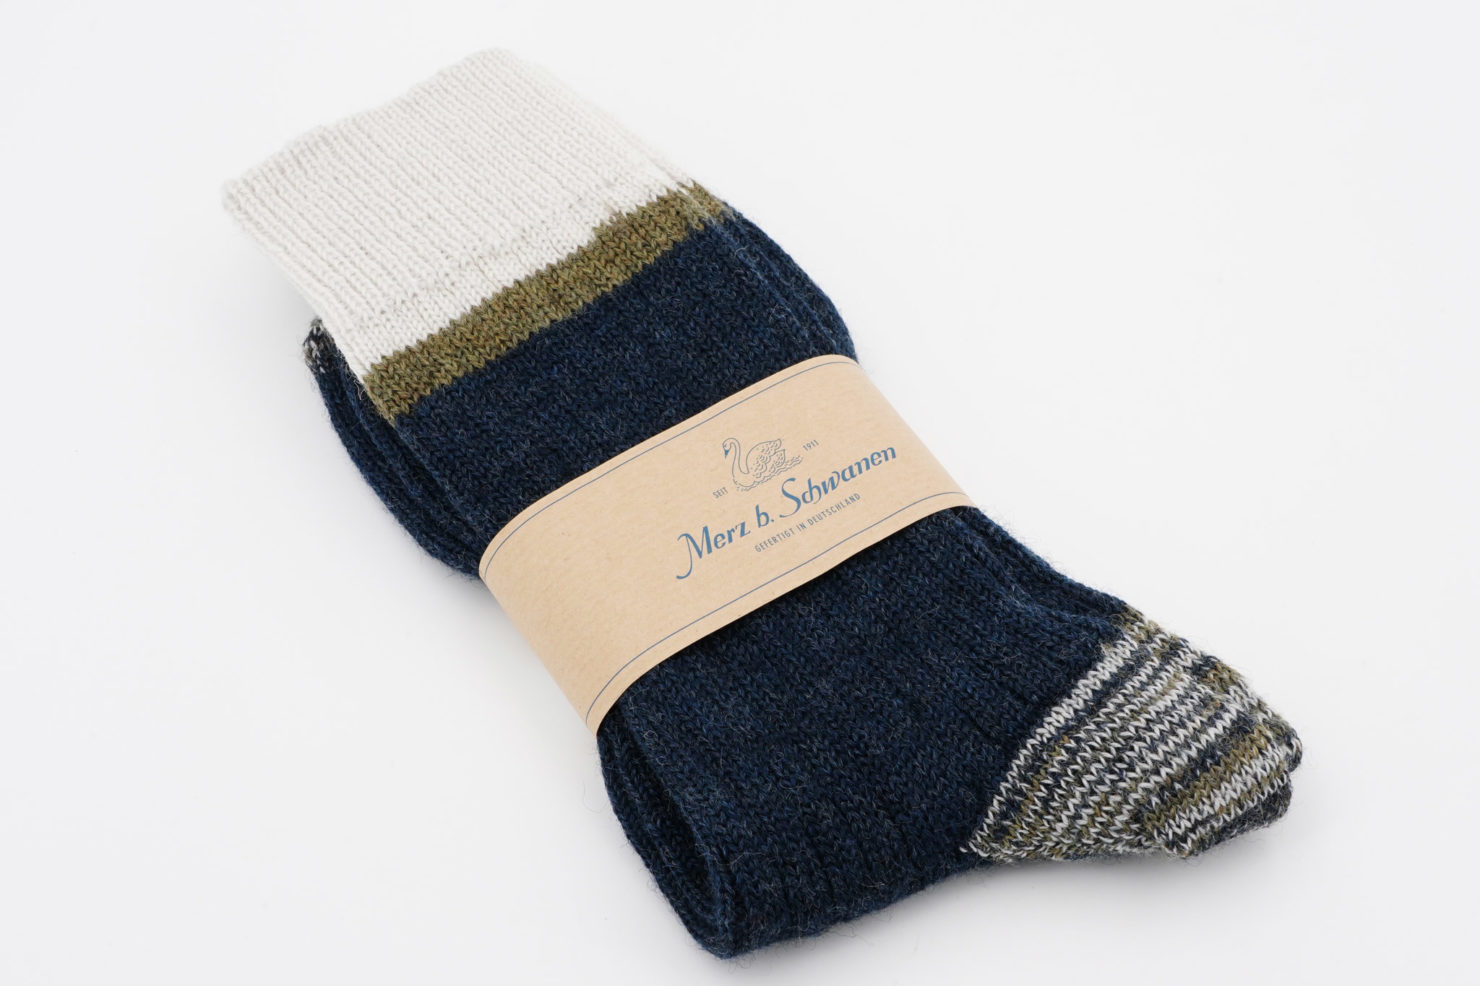 RETRO SPORT SOCKS STRIPED BLUE/NATURE - MERZ B. SCHWANEN